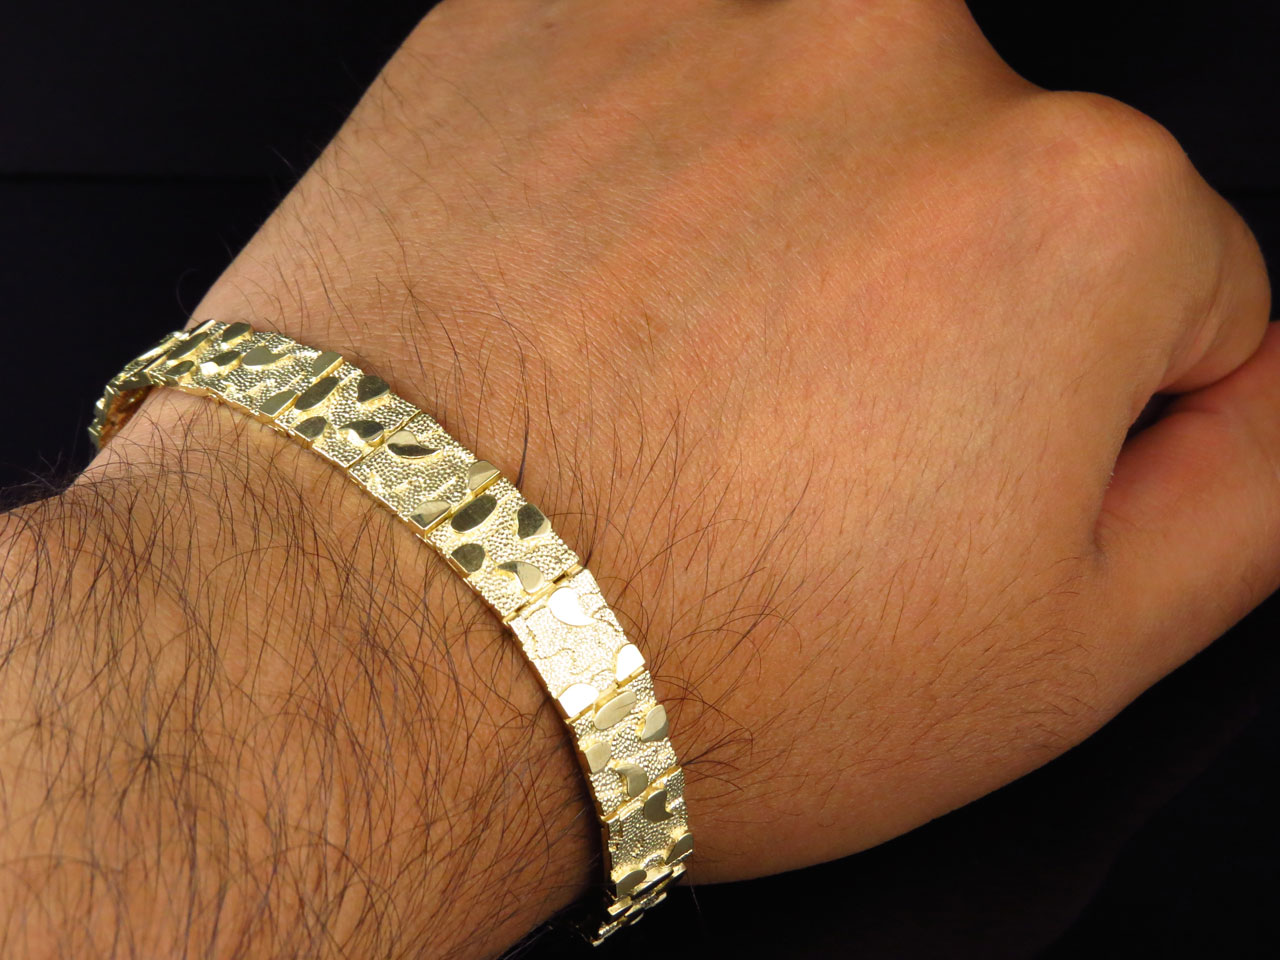 inch bangles bangle one yellow bracelet bracelets cuban diamond cut lg mens gold sided